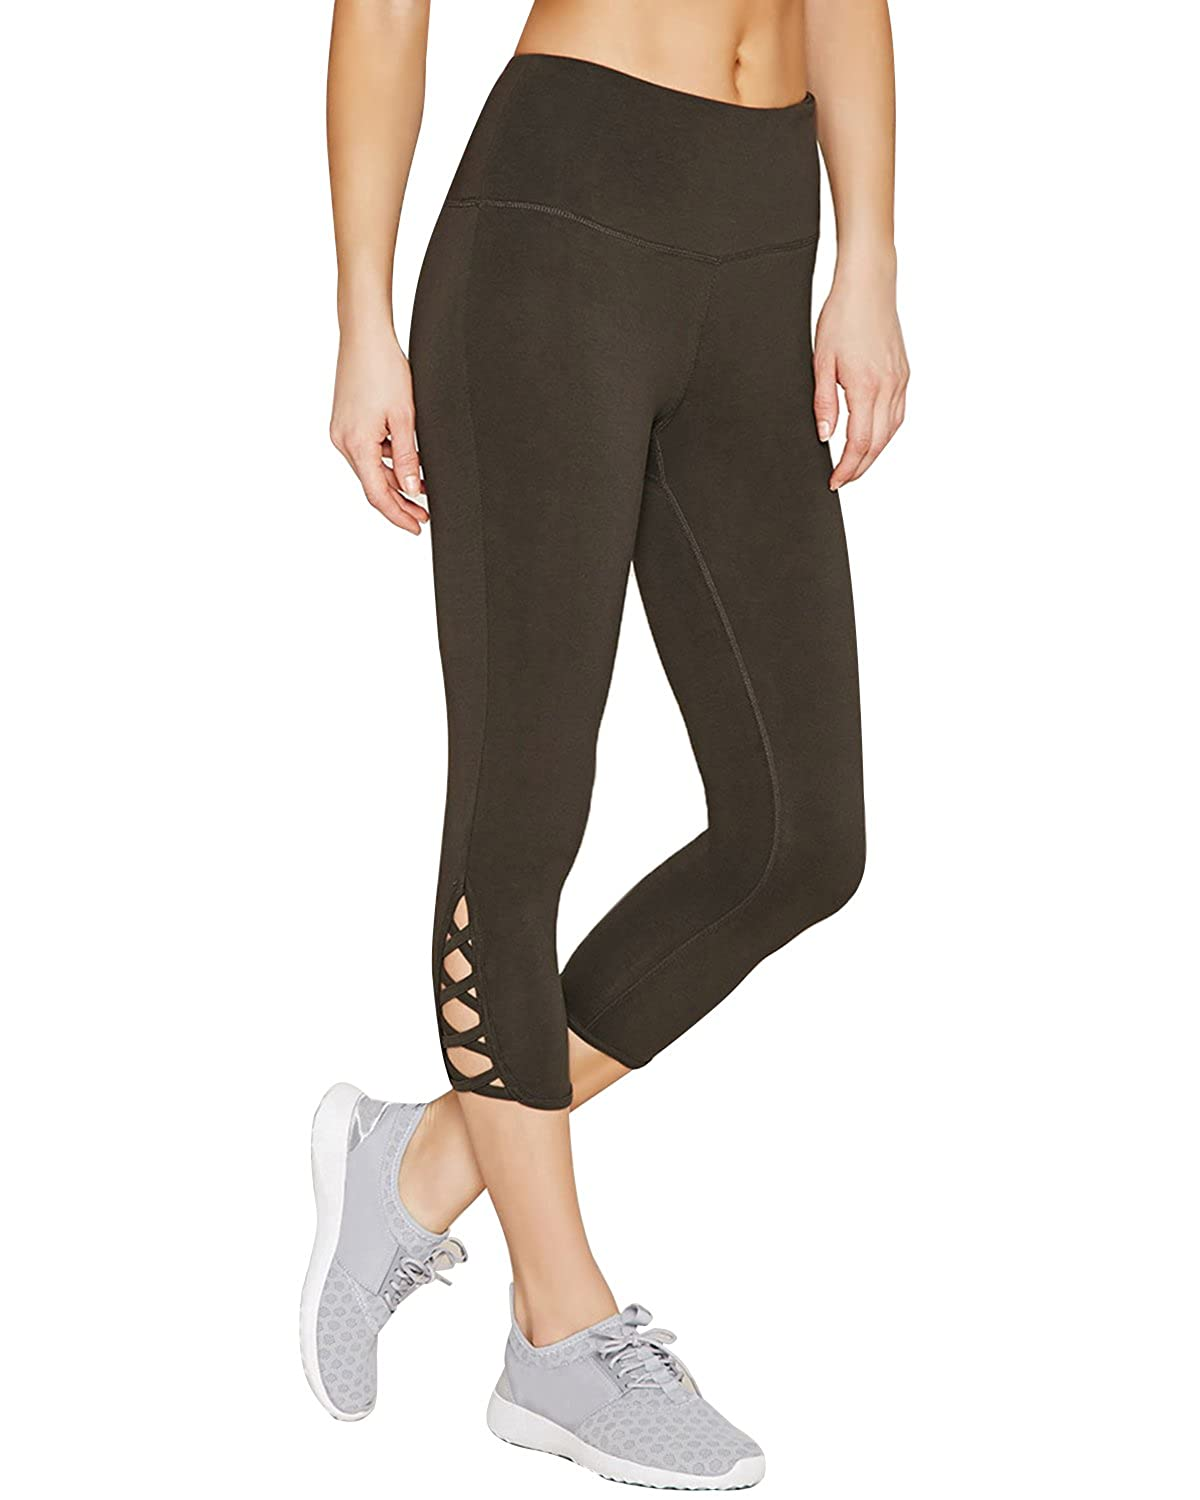 1b1c1ece0425d Kidsform Women Yoga Pants High Waist Strappy Side Skinny Leggings Workout  Running Pants with Hidden Pocket at Amazon Women's Clothing store: